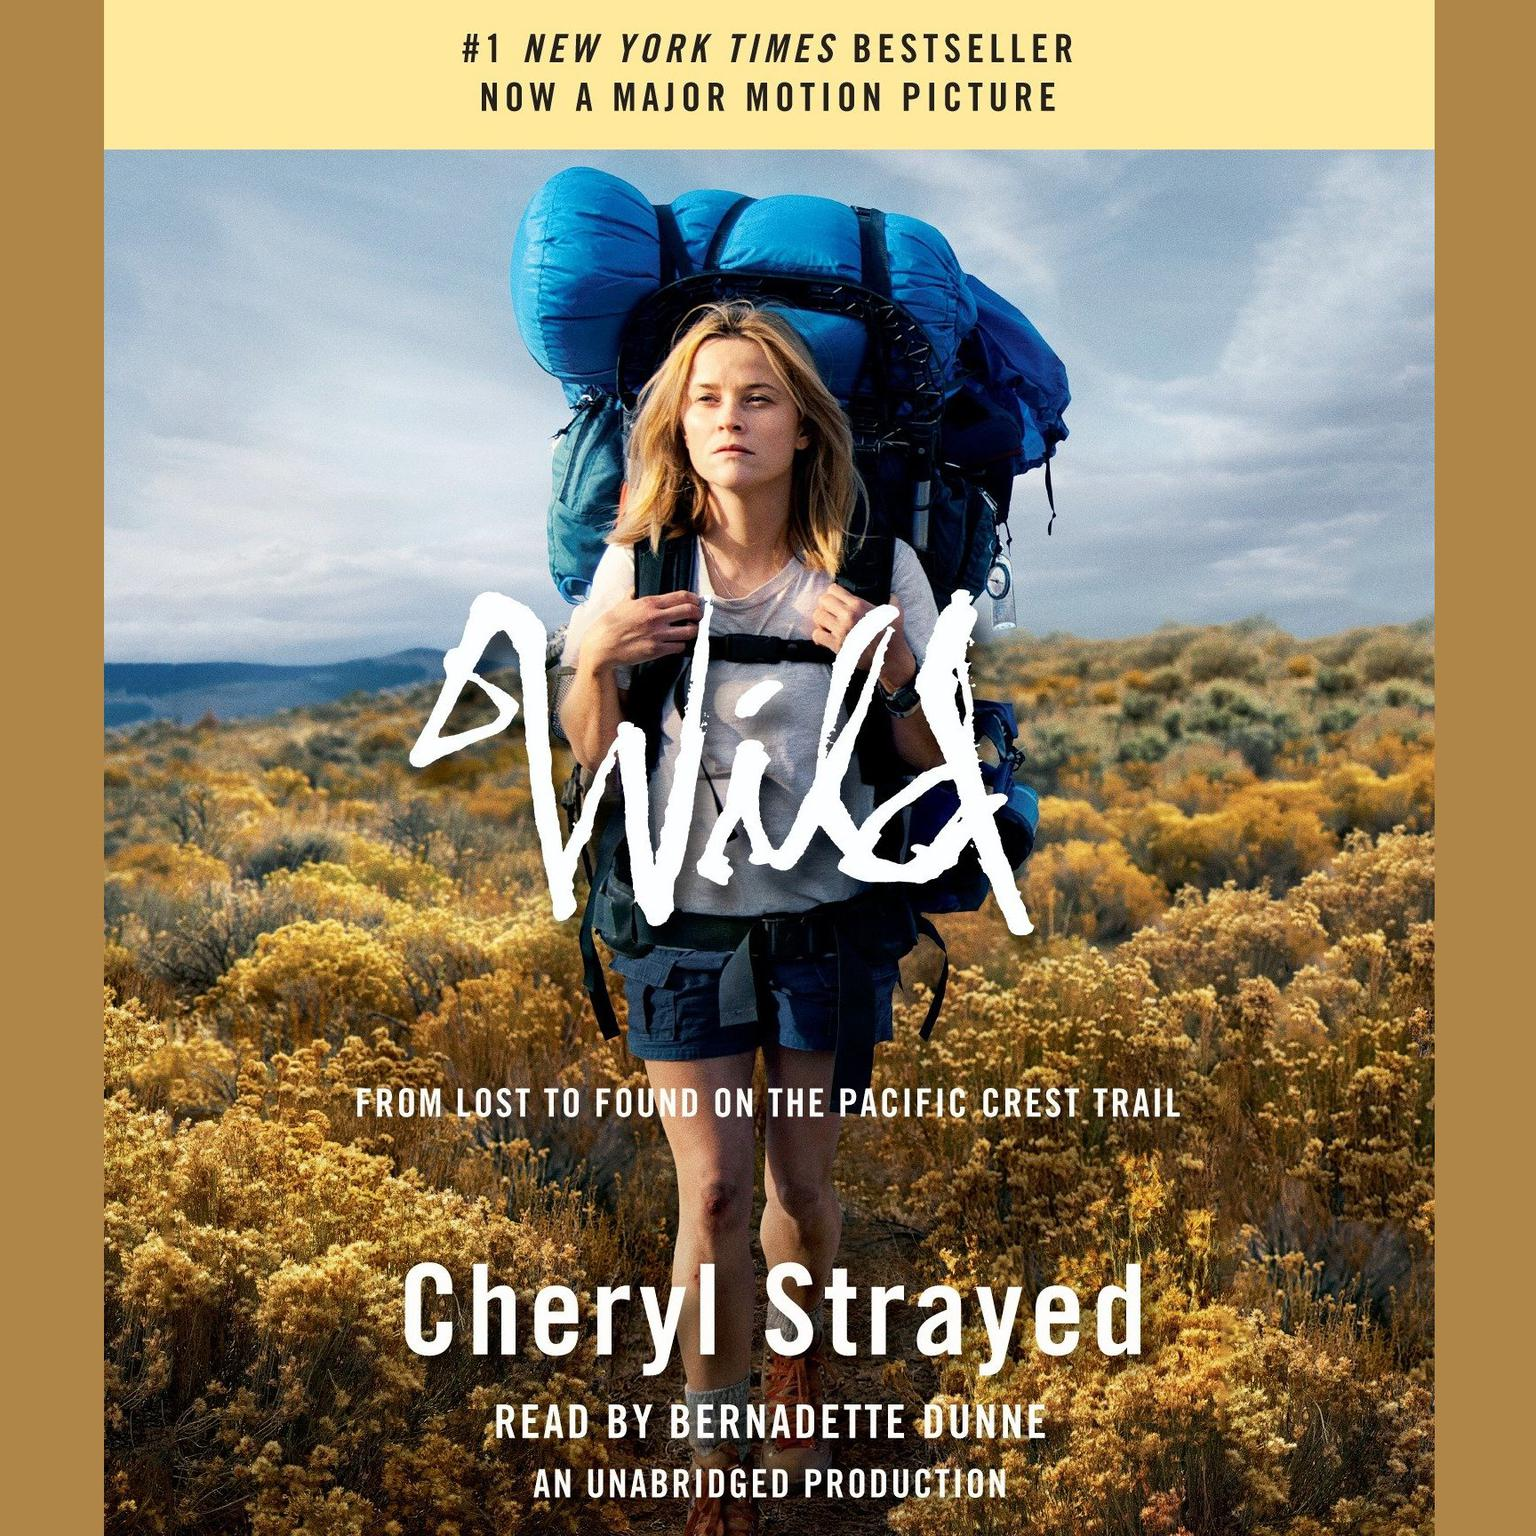 Printable Wild (Movie Tie-in Edition): From Lost to Found on the Pacific Crest Trail Audiobook Cover Art